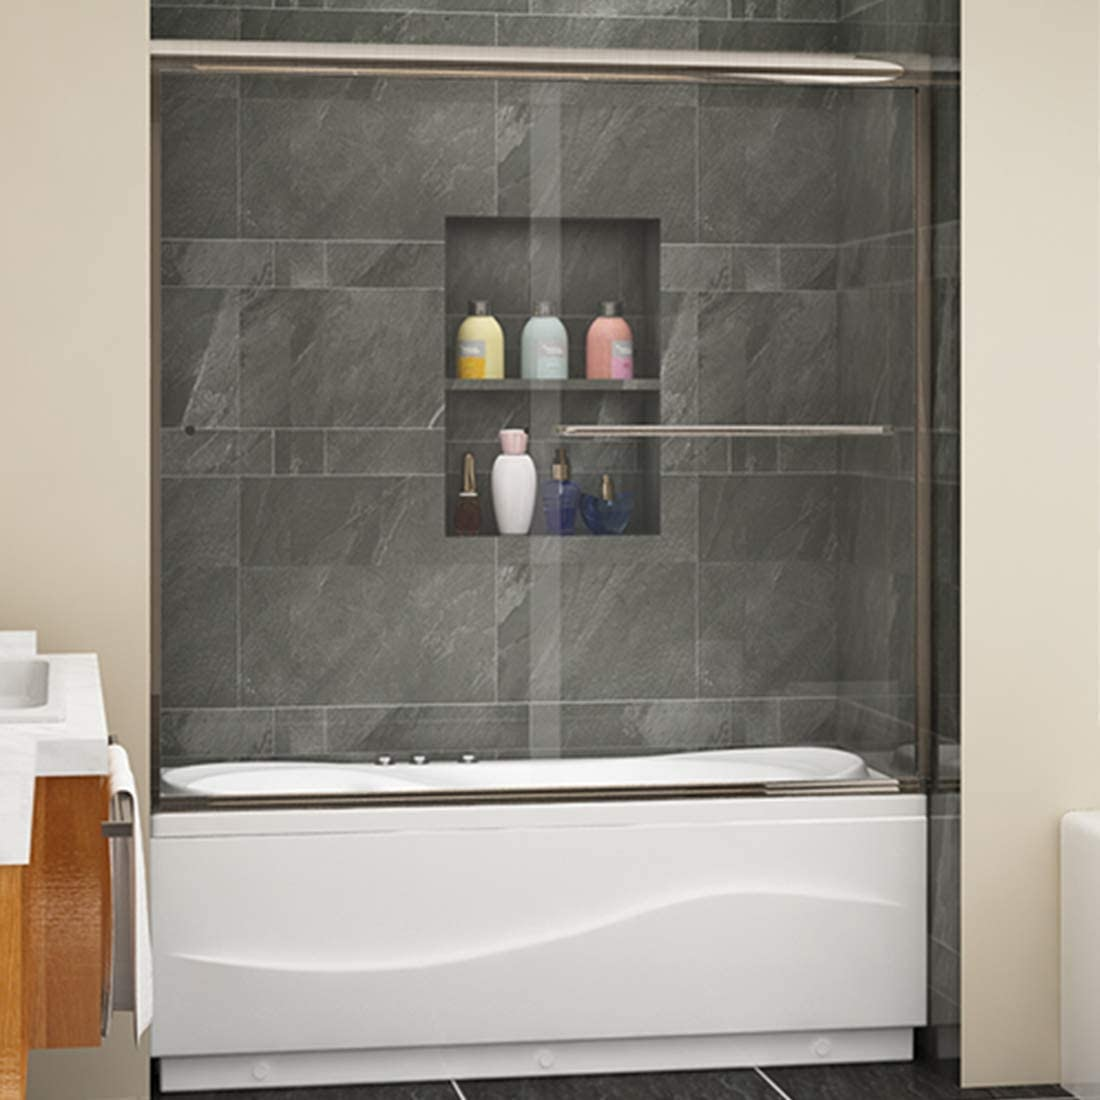 A shower tub remodel with a built-in wall niche